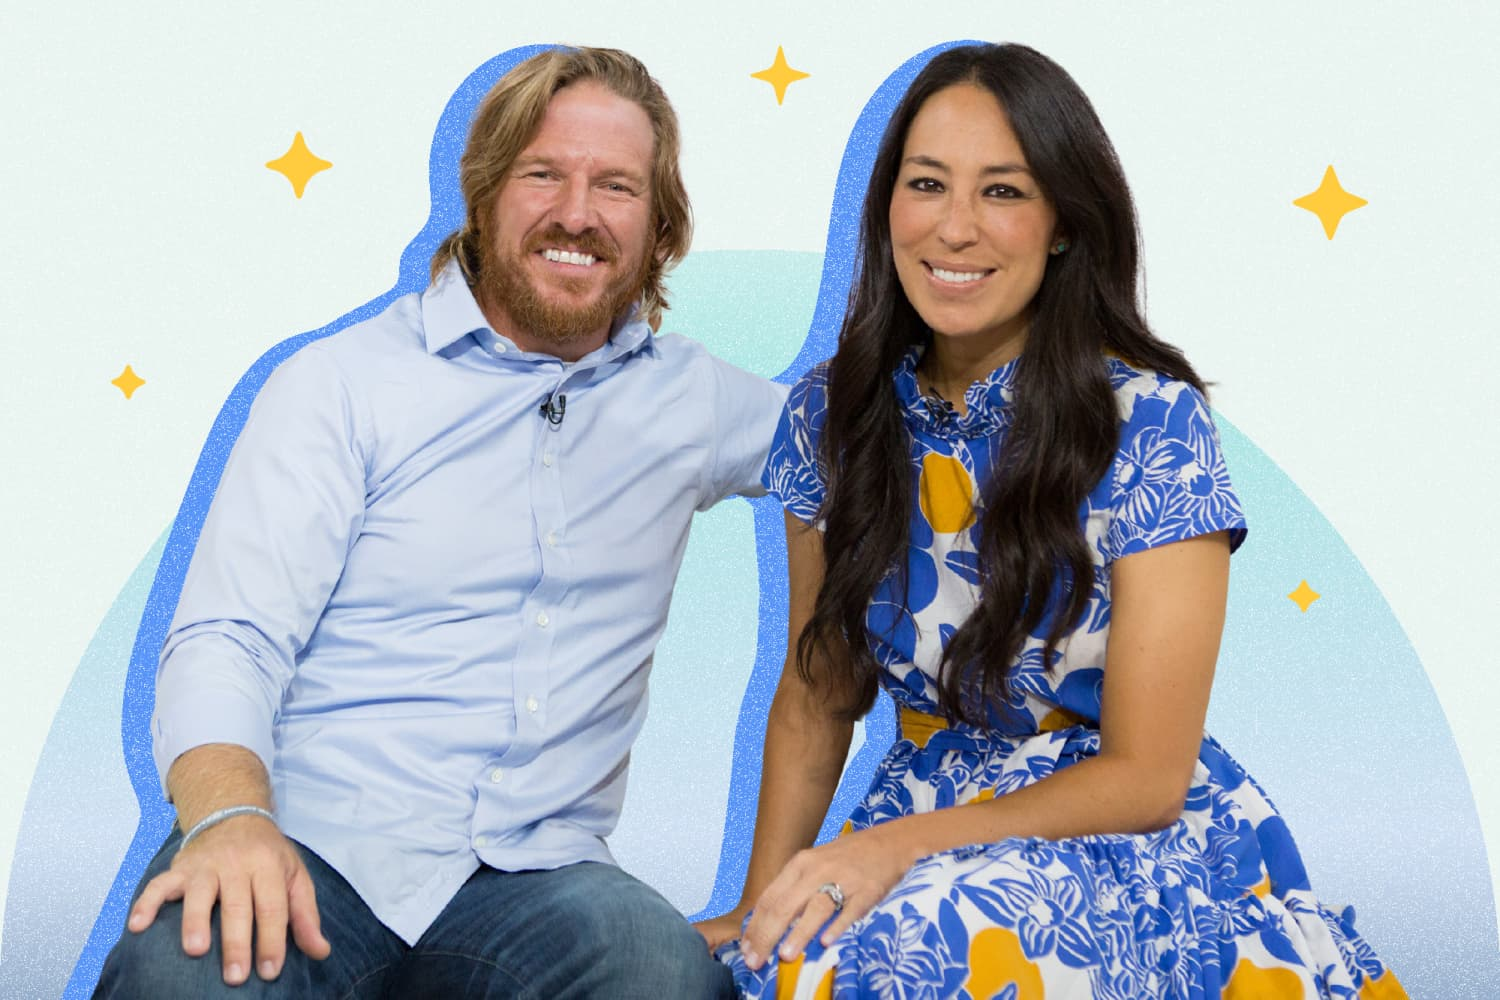 Joanna Gaines Says Baskets Are Key For Decluttering the Kitchen